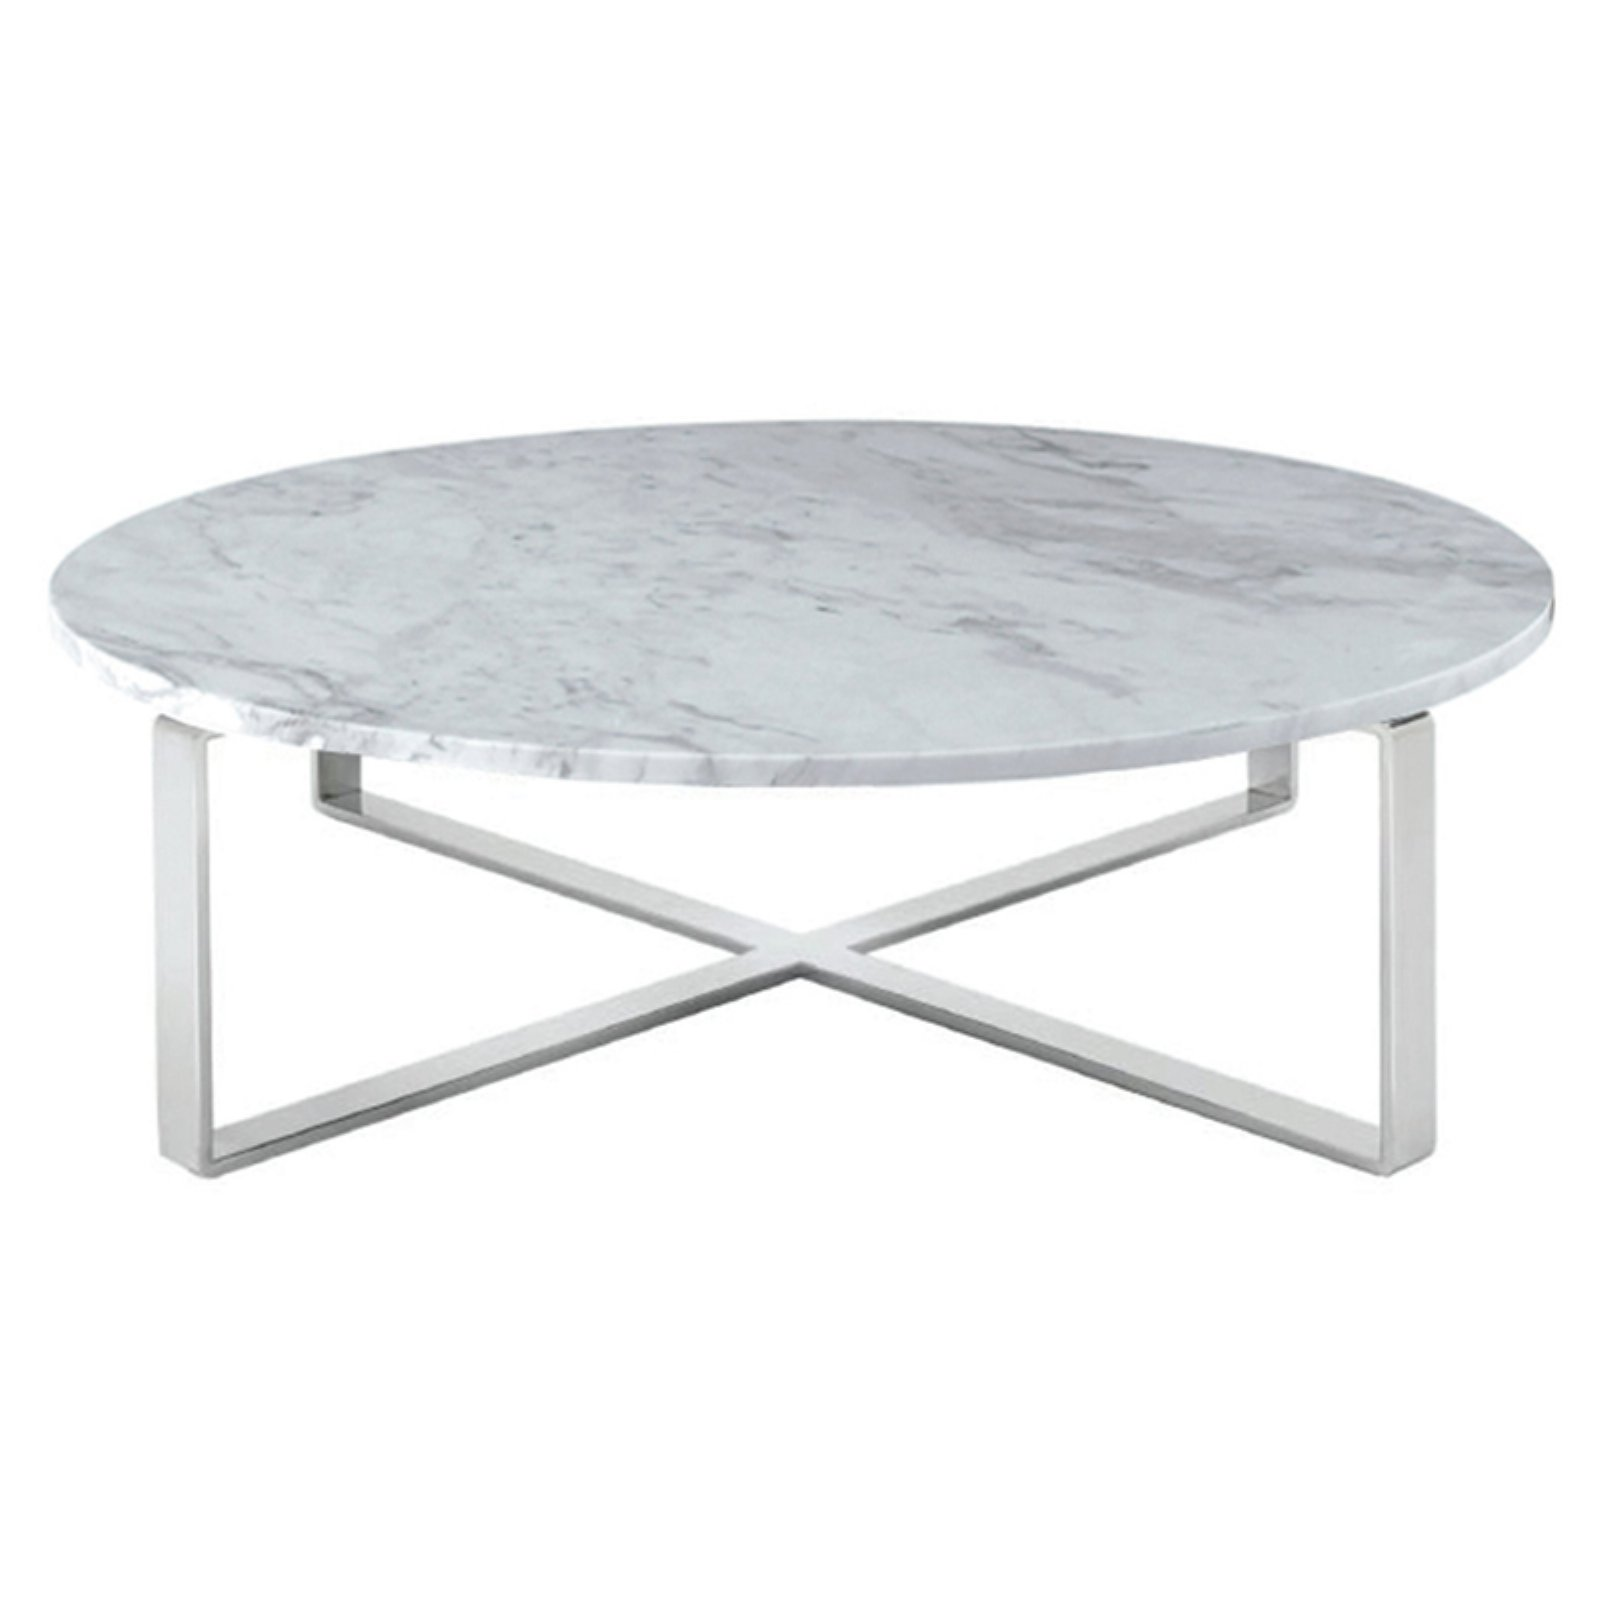 C2a Round Marble Coffee Table Marble Top Coffee Table Marble Coffee Table Coffee Table [ 1600 x 1600 Pixel ]